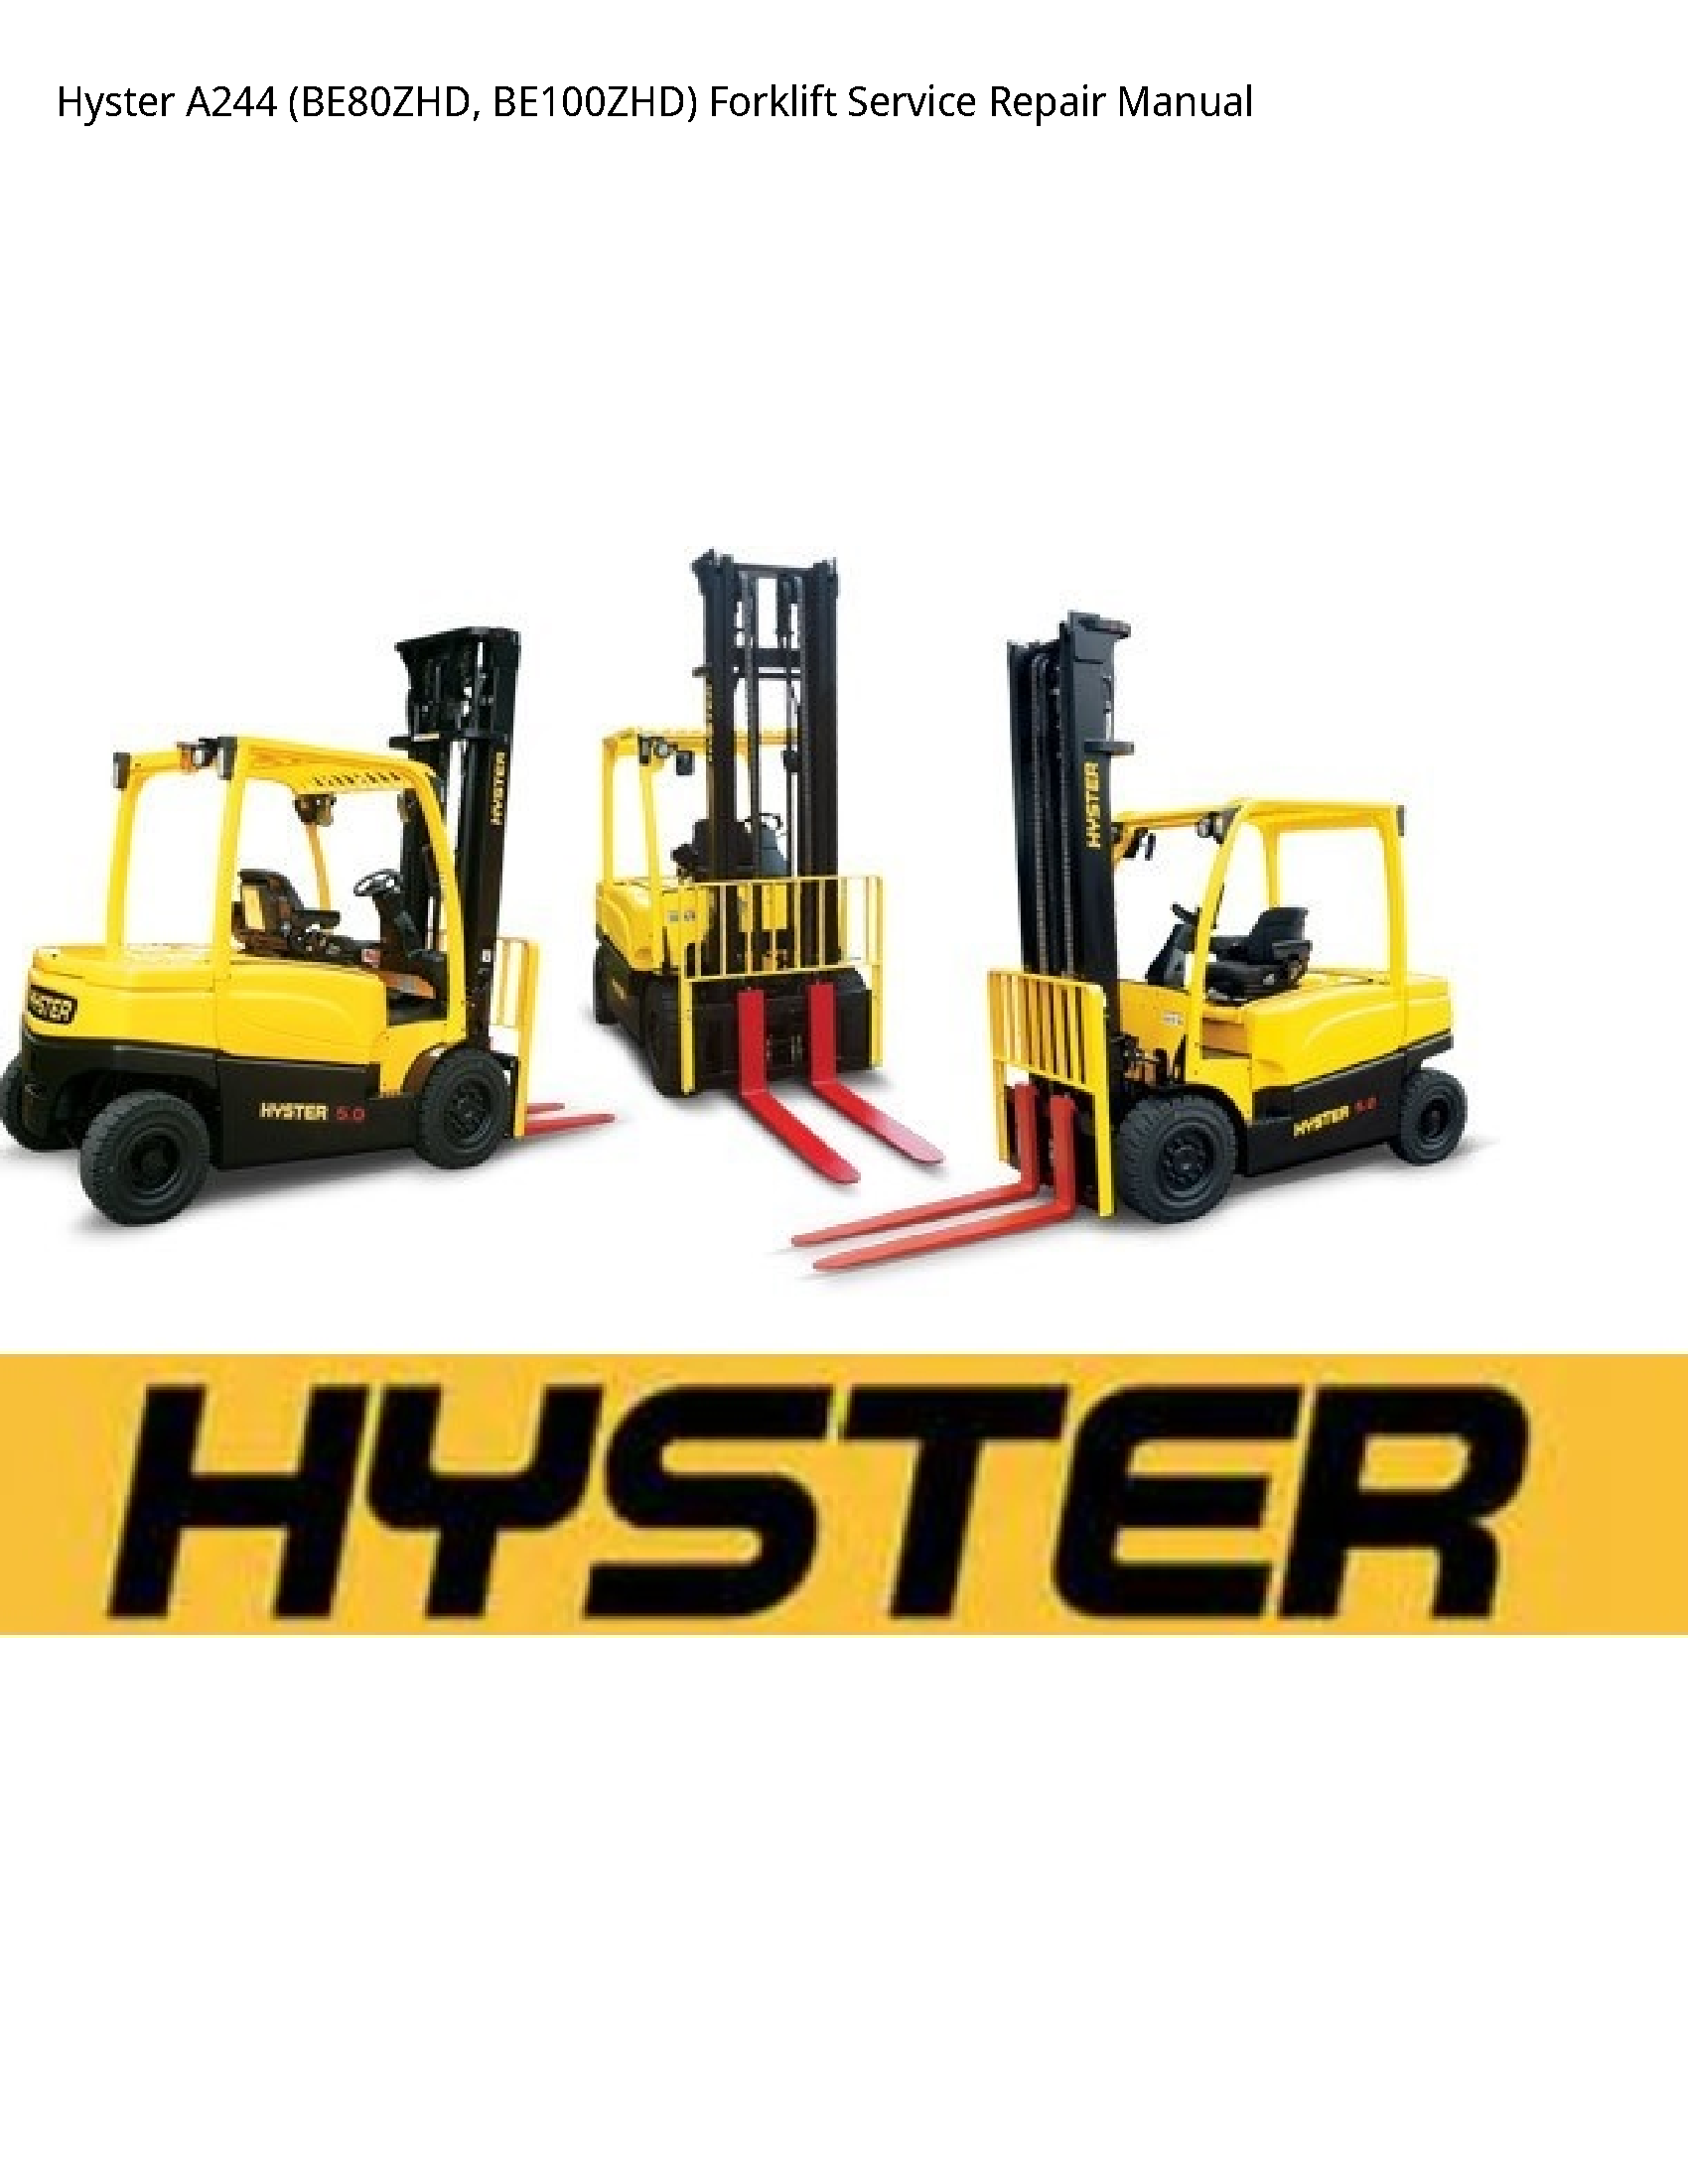 Hyster A244 Forklift manual